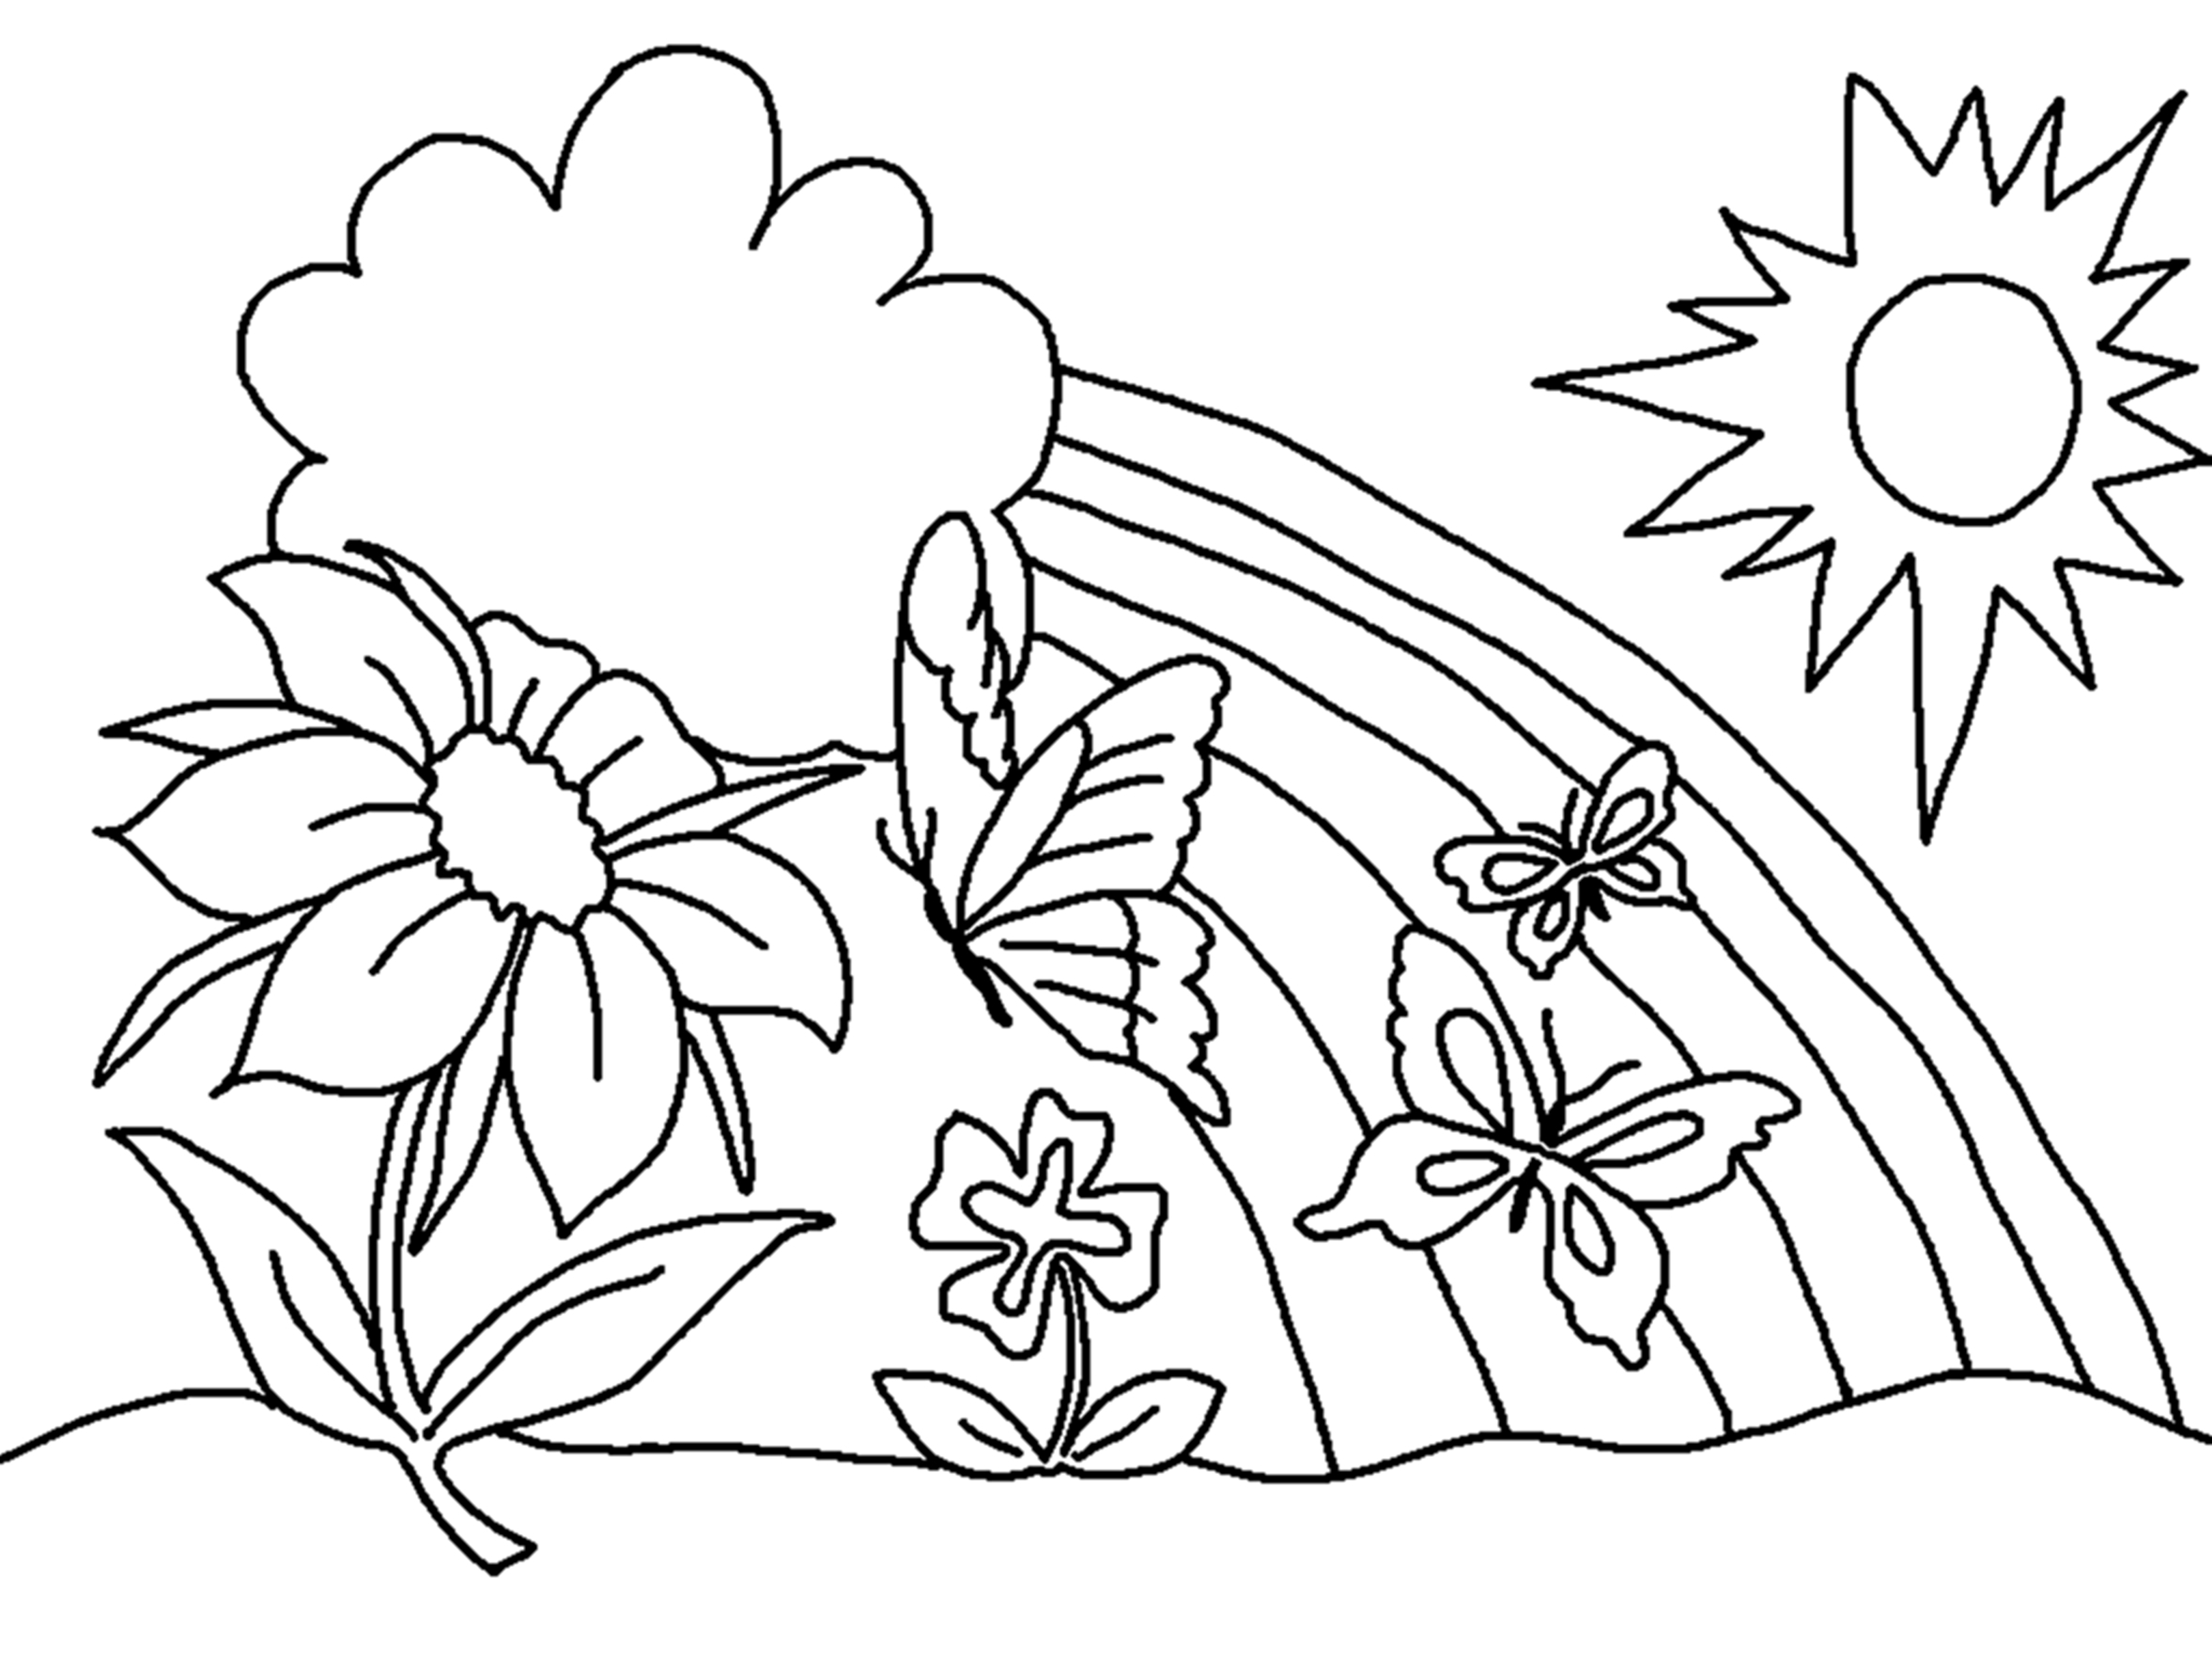 flower coloring pages free printable difficult flower coloring pages getcoloringpagescom coloring pages flower free printable